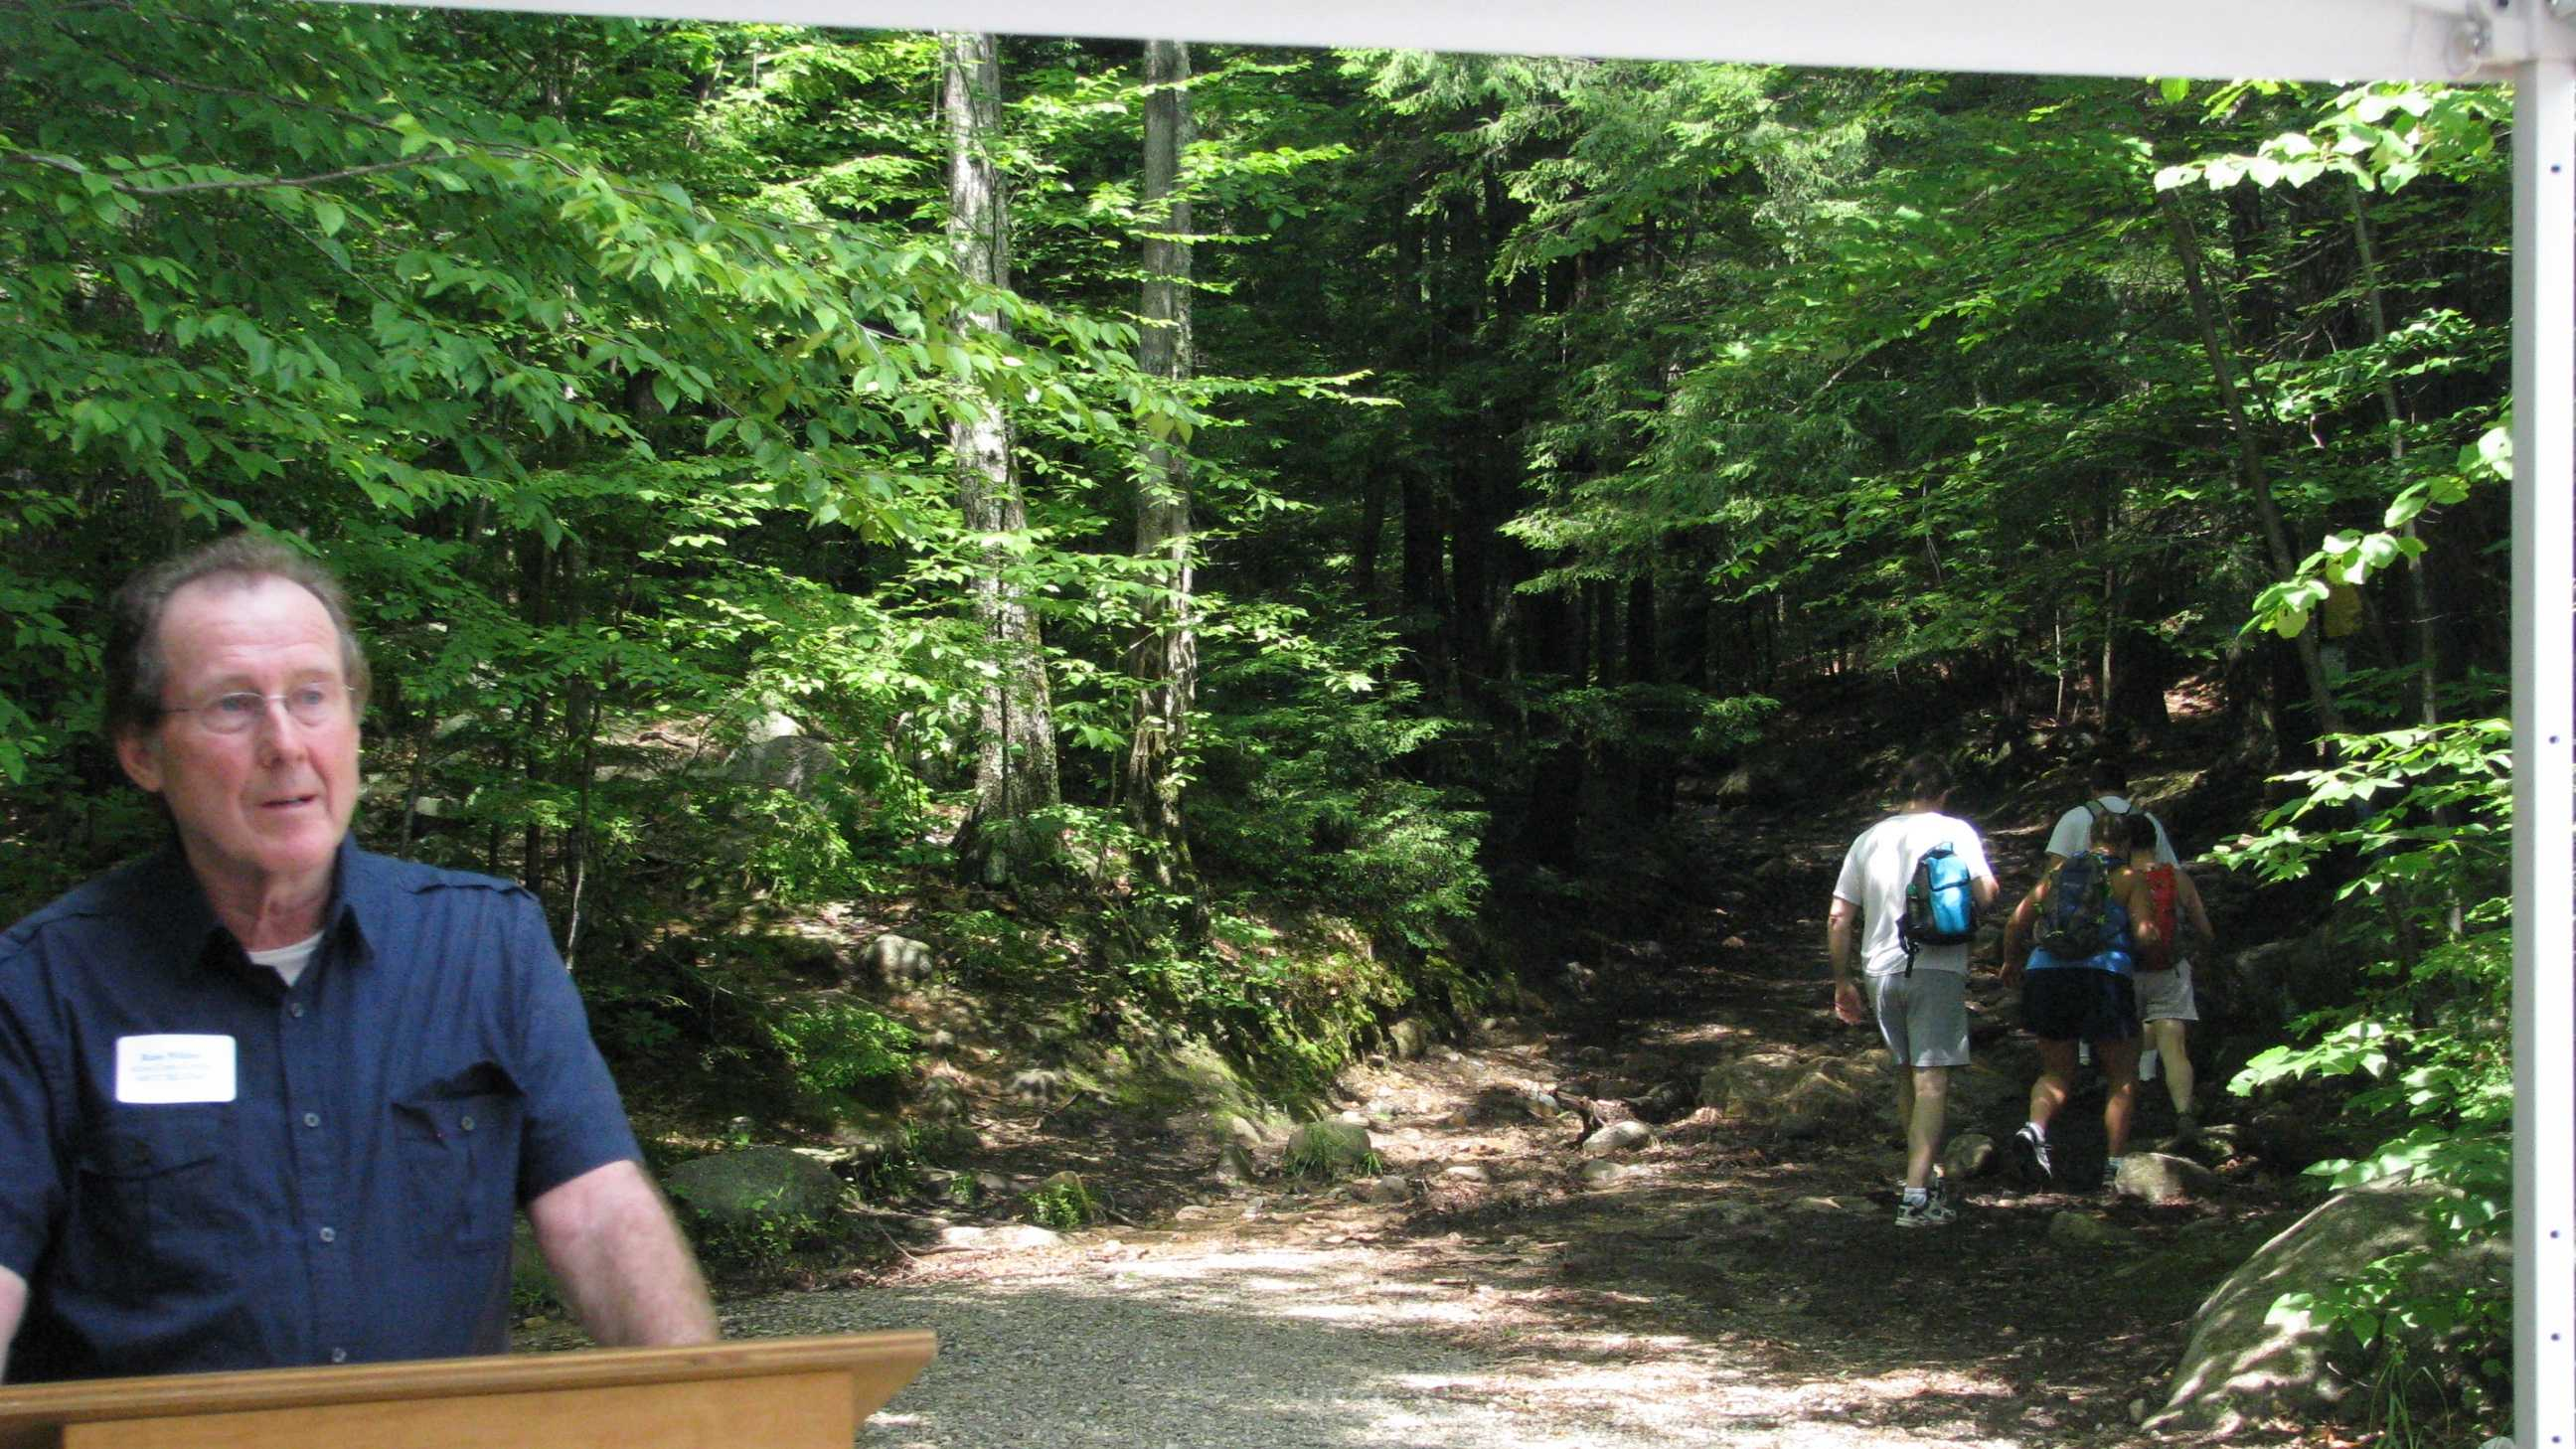 Russ Wilder, chair of the Belknap Range Conservation Coalition speaks about the importance of protecting Mount Major at a press conference at the trail head in Alton, Tuesday.